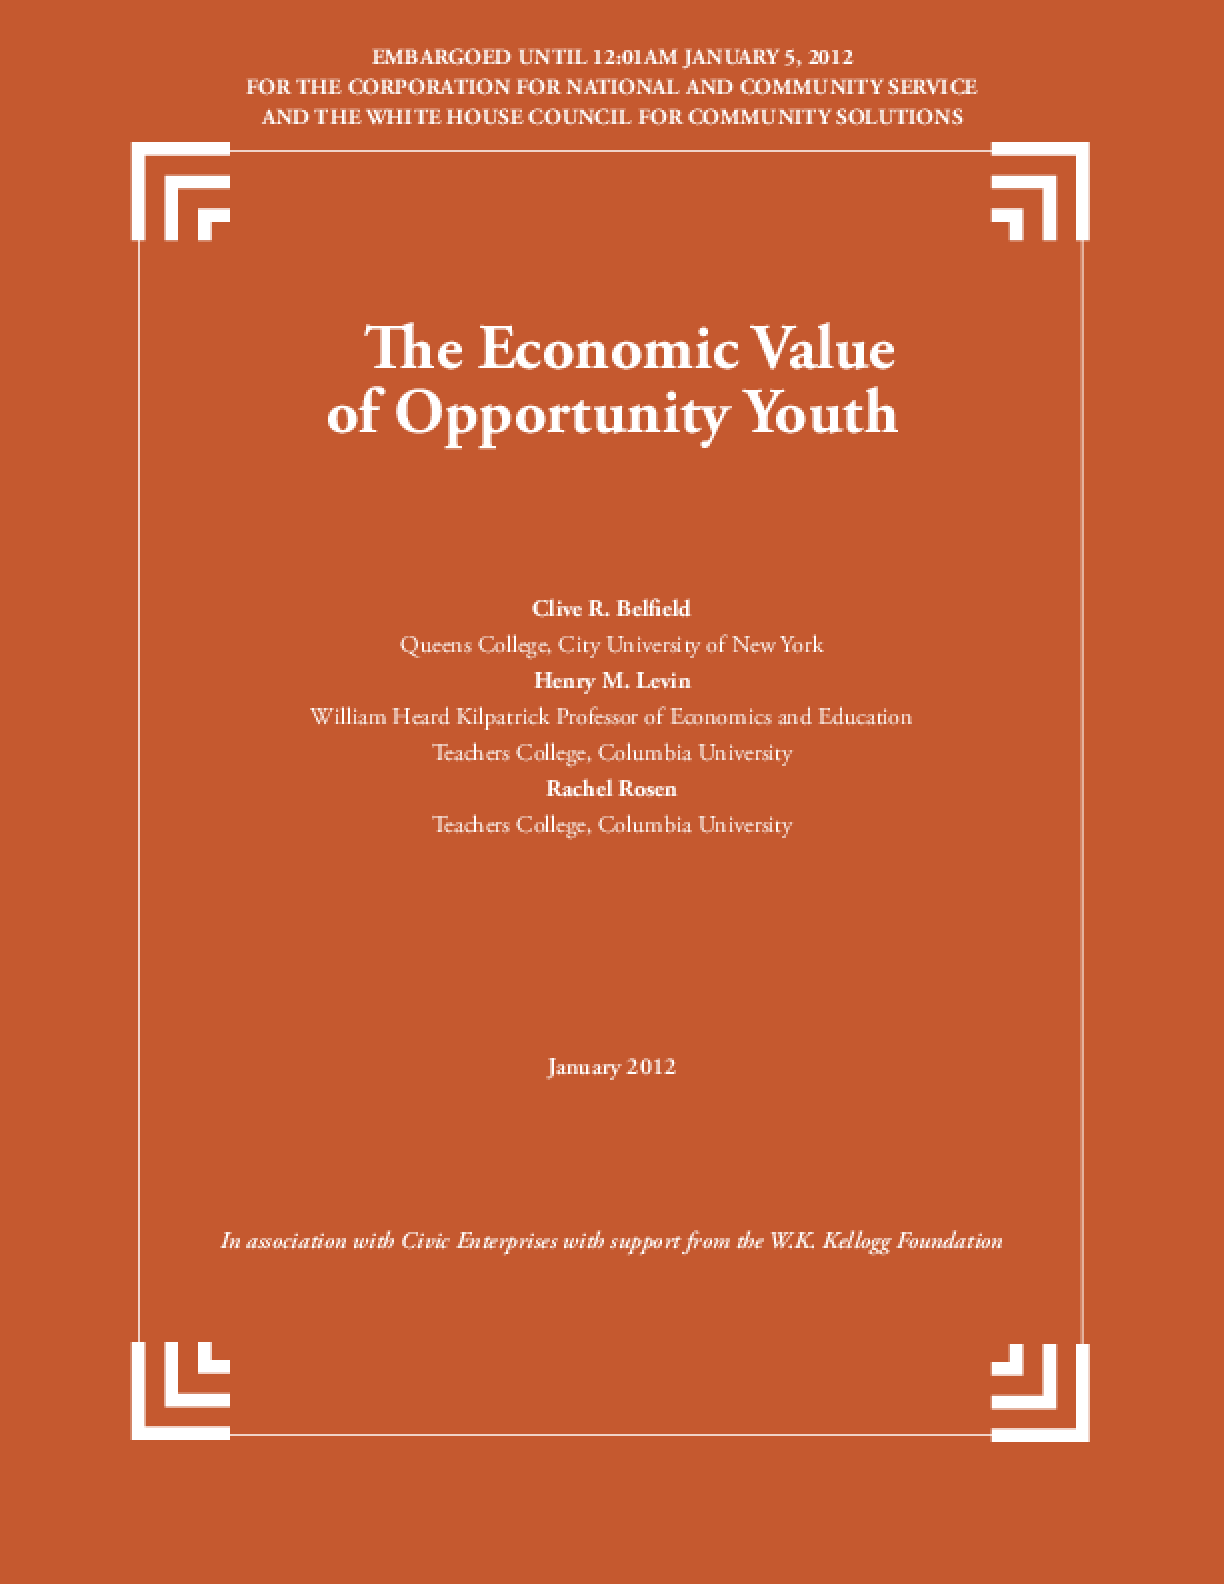 Economic Value of Opportunity Youth, The